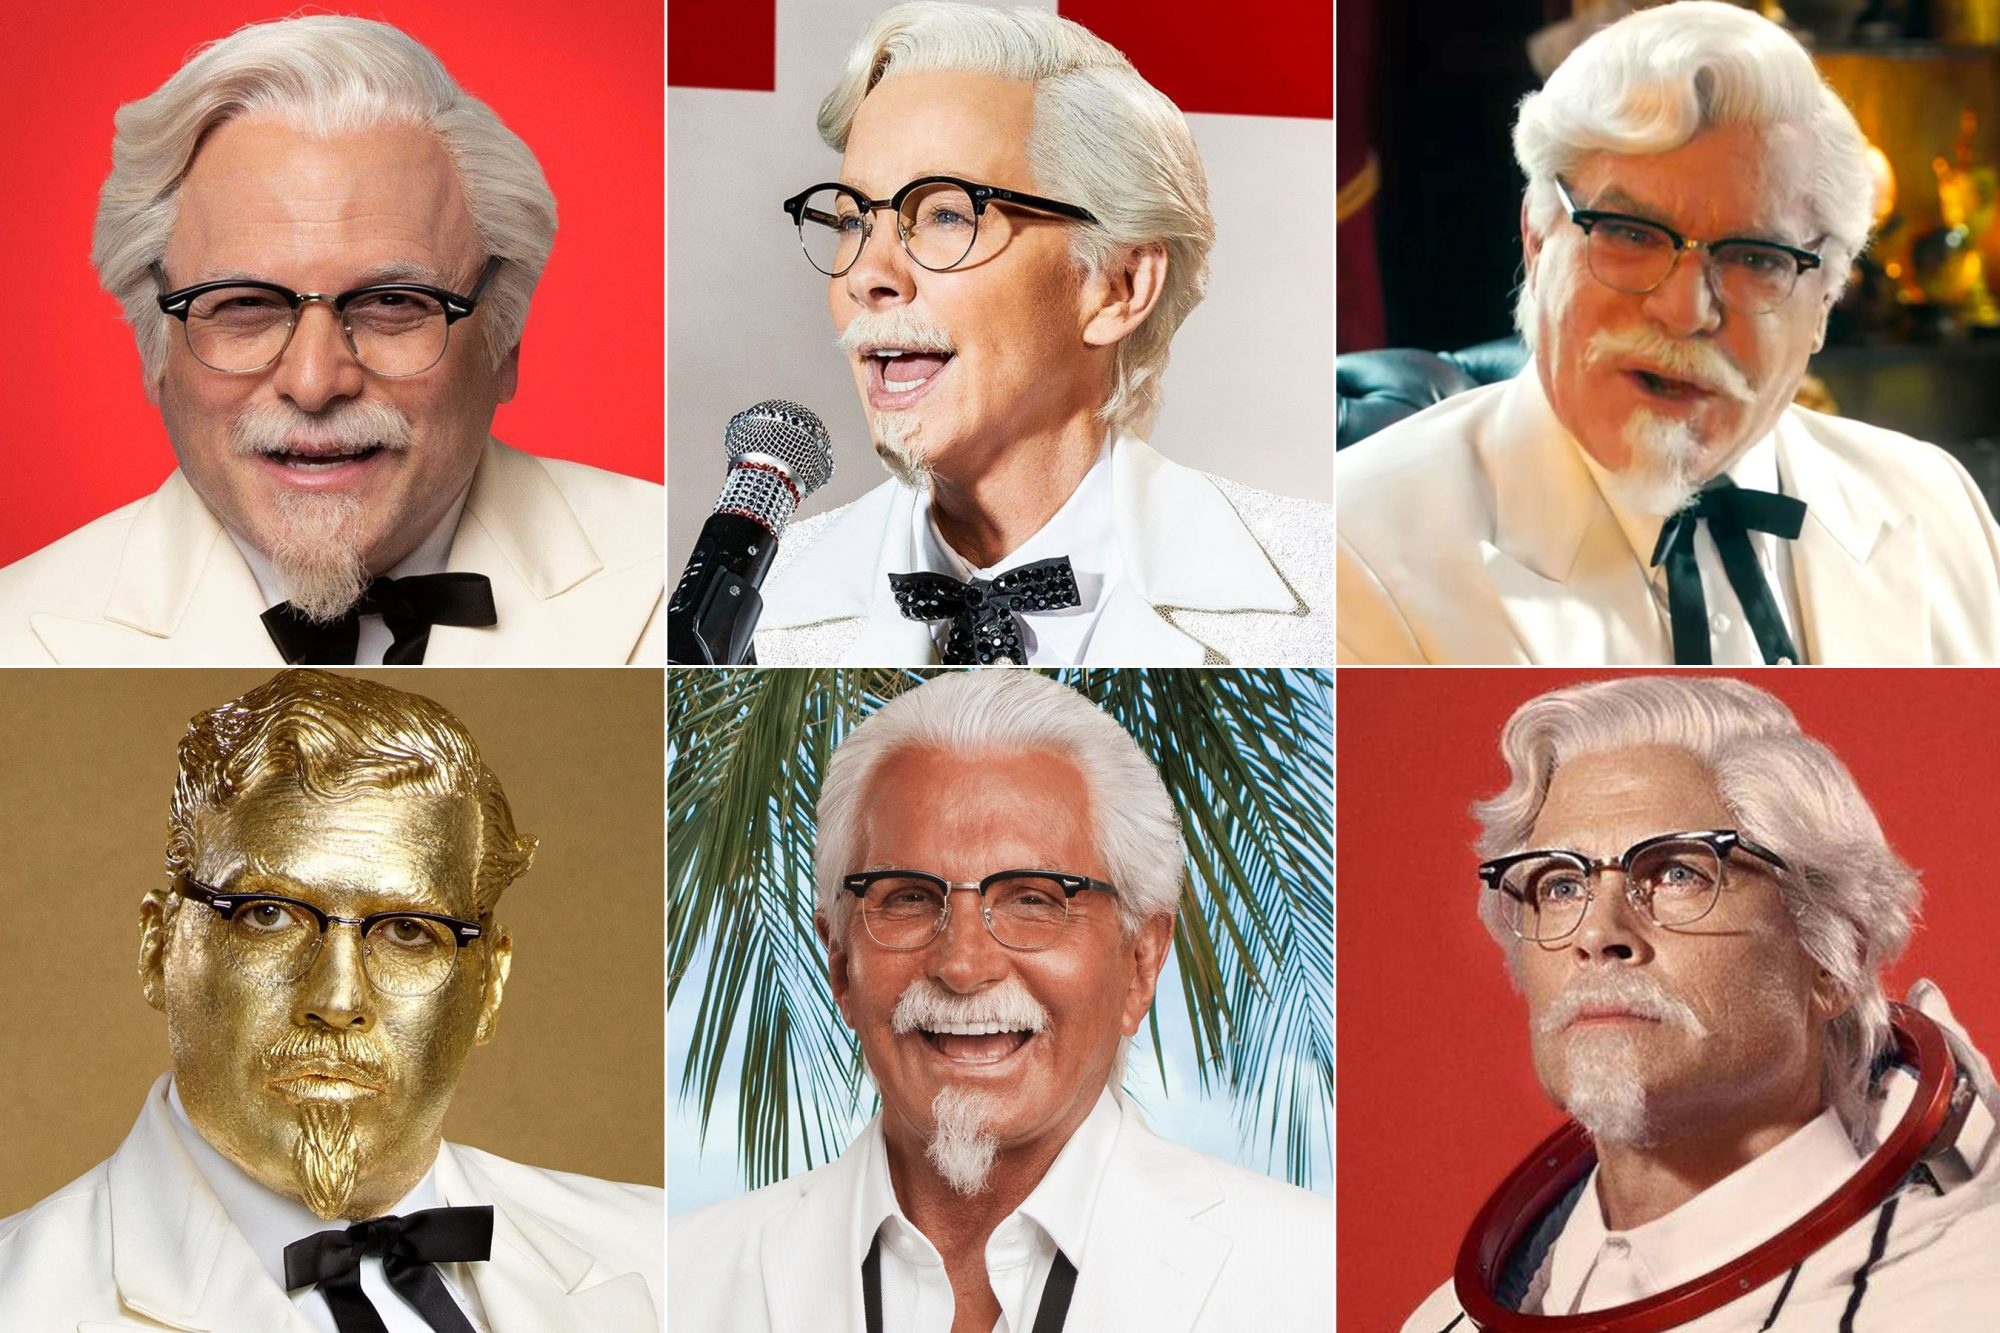 Who Is The New Kfc Colonel Christmas Ad 2020 KFC commercials: Every person who's played Colonel Sanders | EW.com